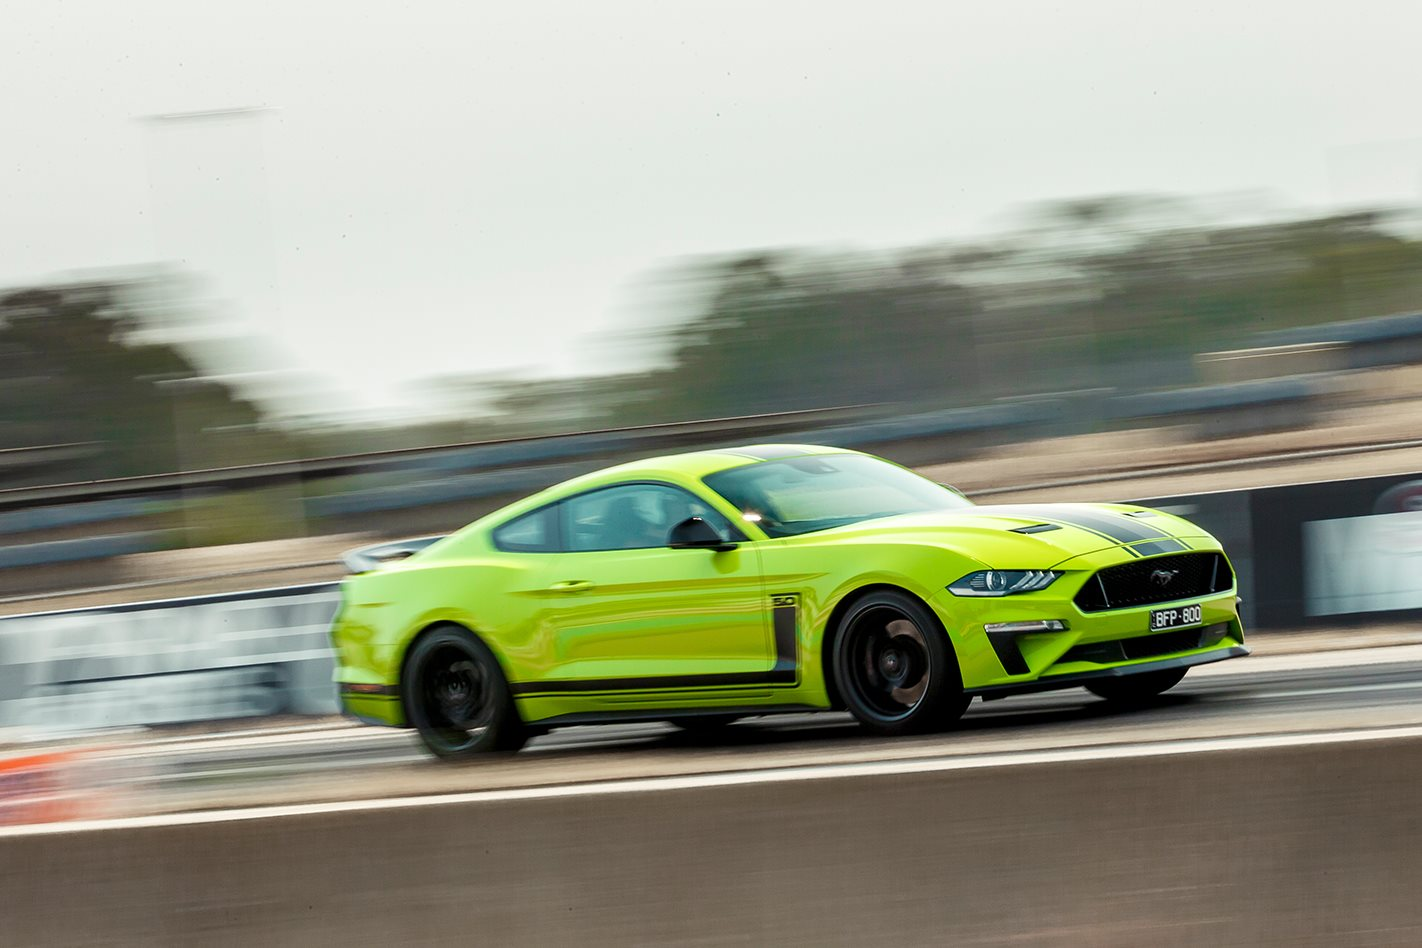 Ford Mustang R-Spec: real-world 0-100km/h time revealed